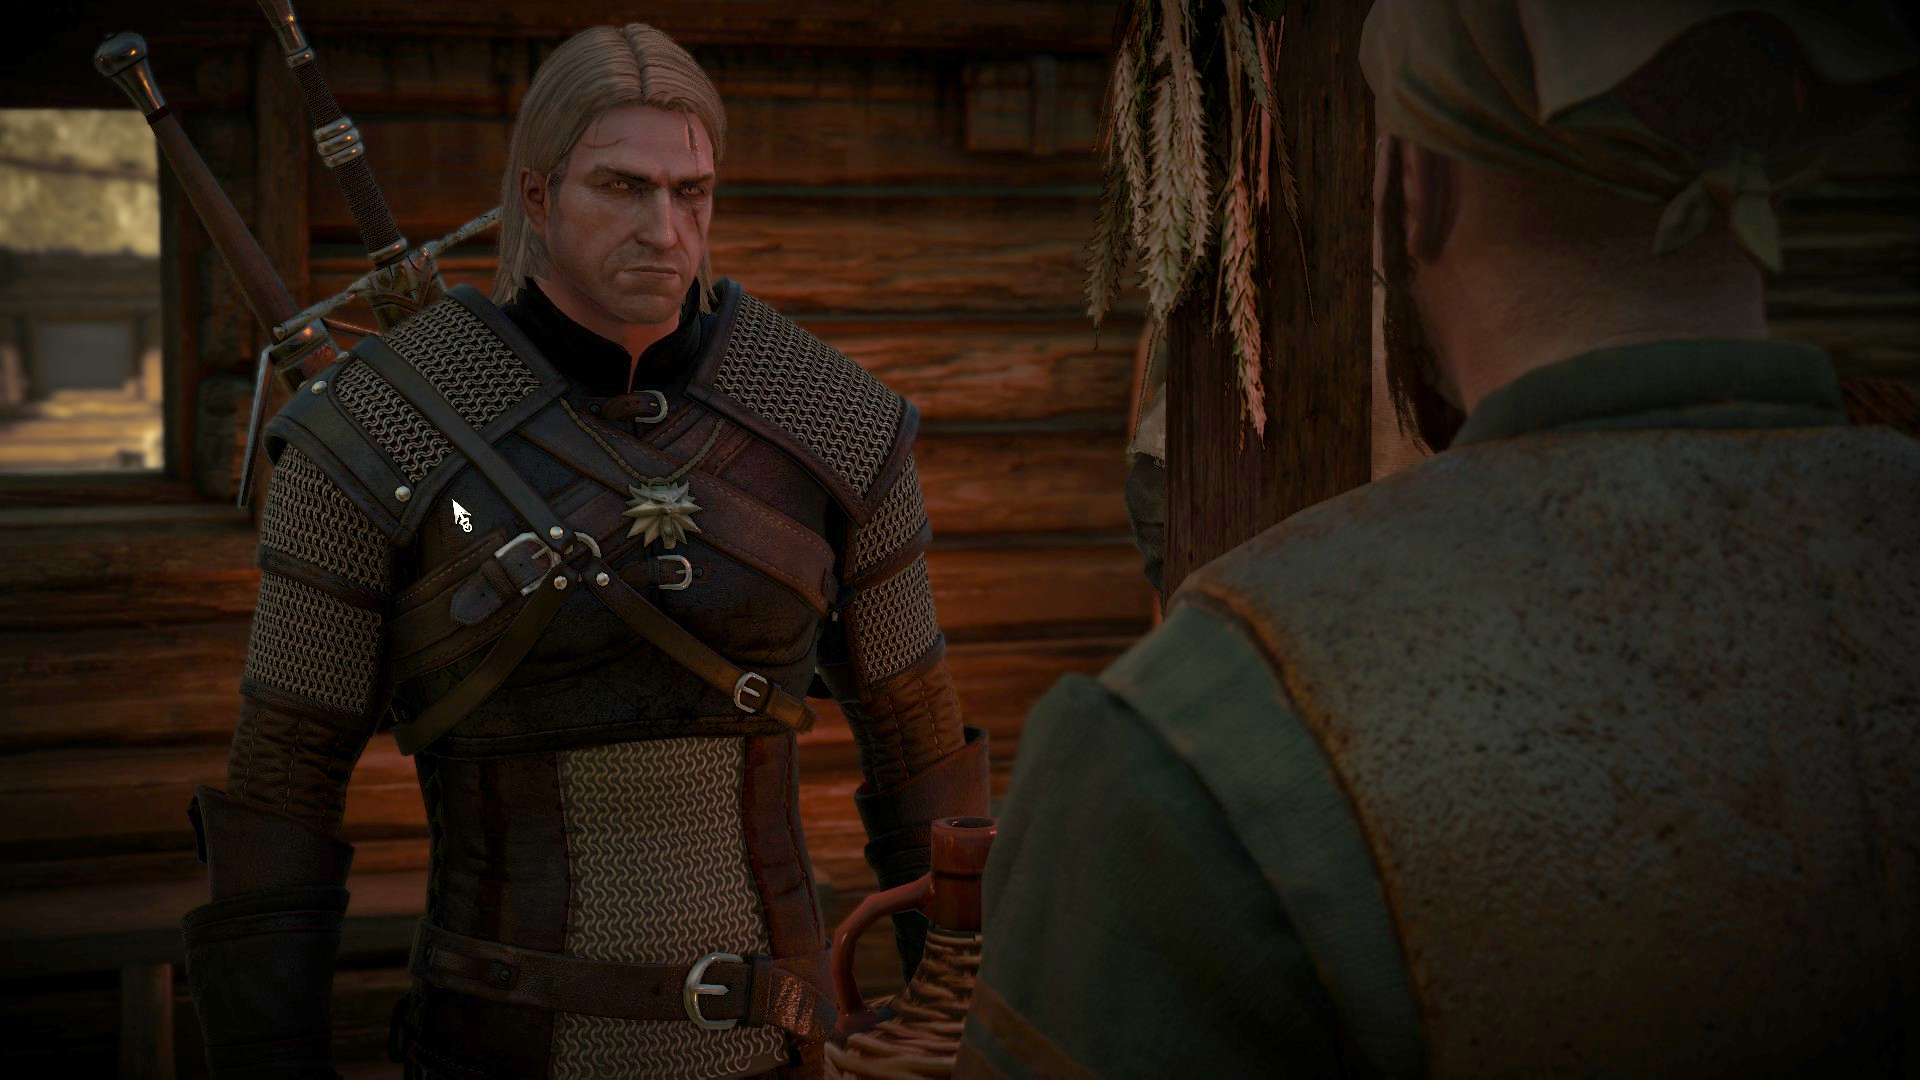 Witcher 2 Geralt Ver 3 Preview At The Witcher 3 Nexus Mods And Community